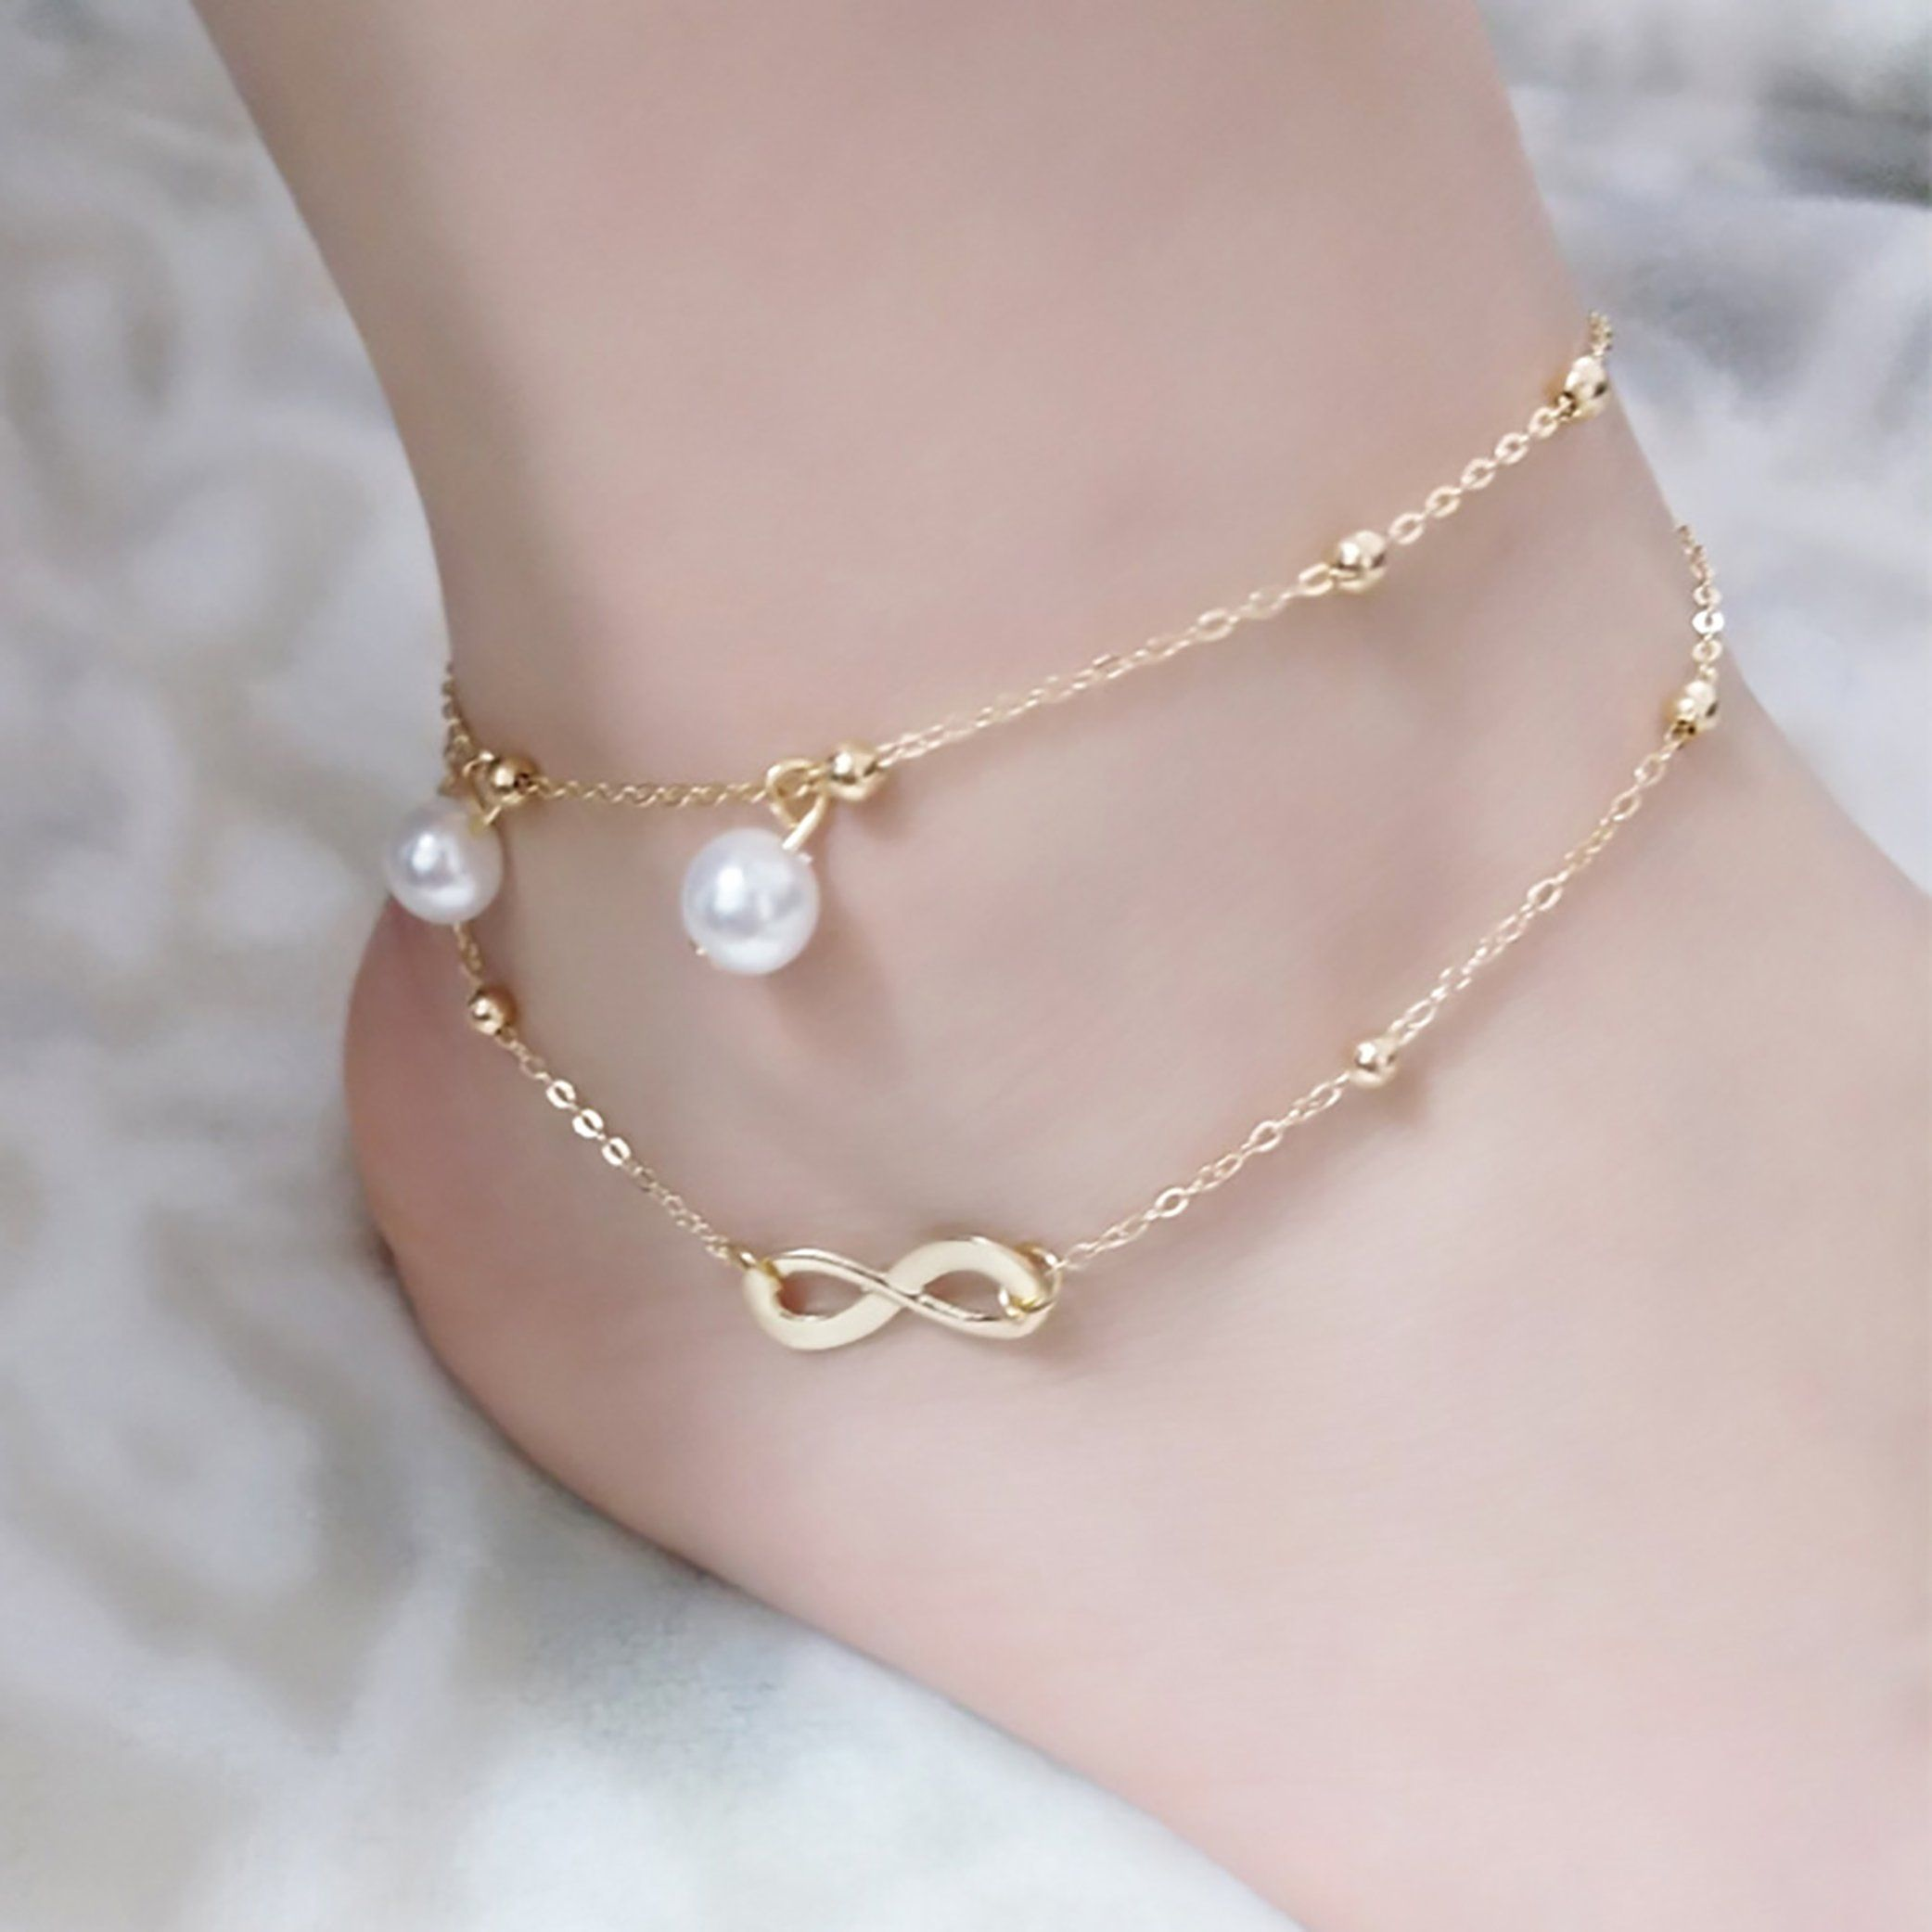 plated sophia in jewelry lyst gallery kokosalaki mytilus anklet gold bangle metallic